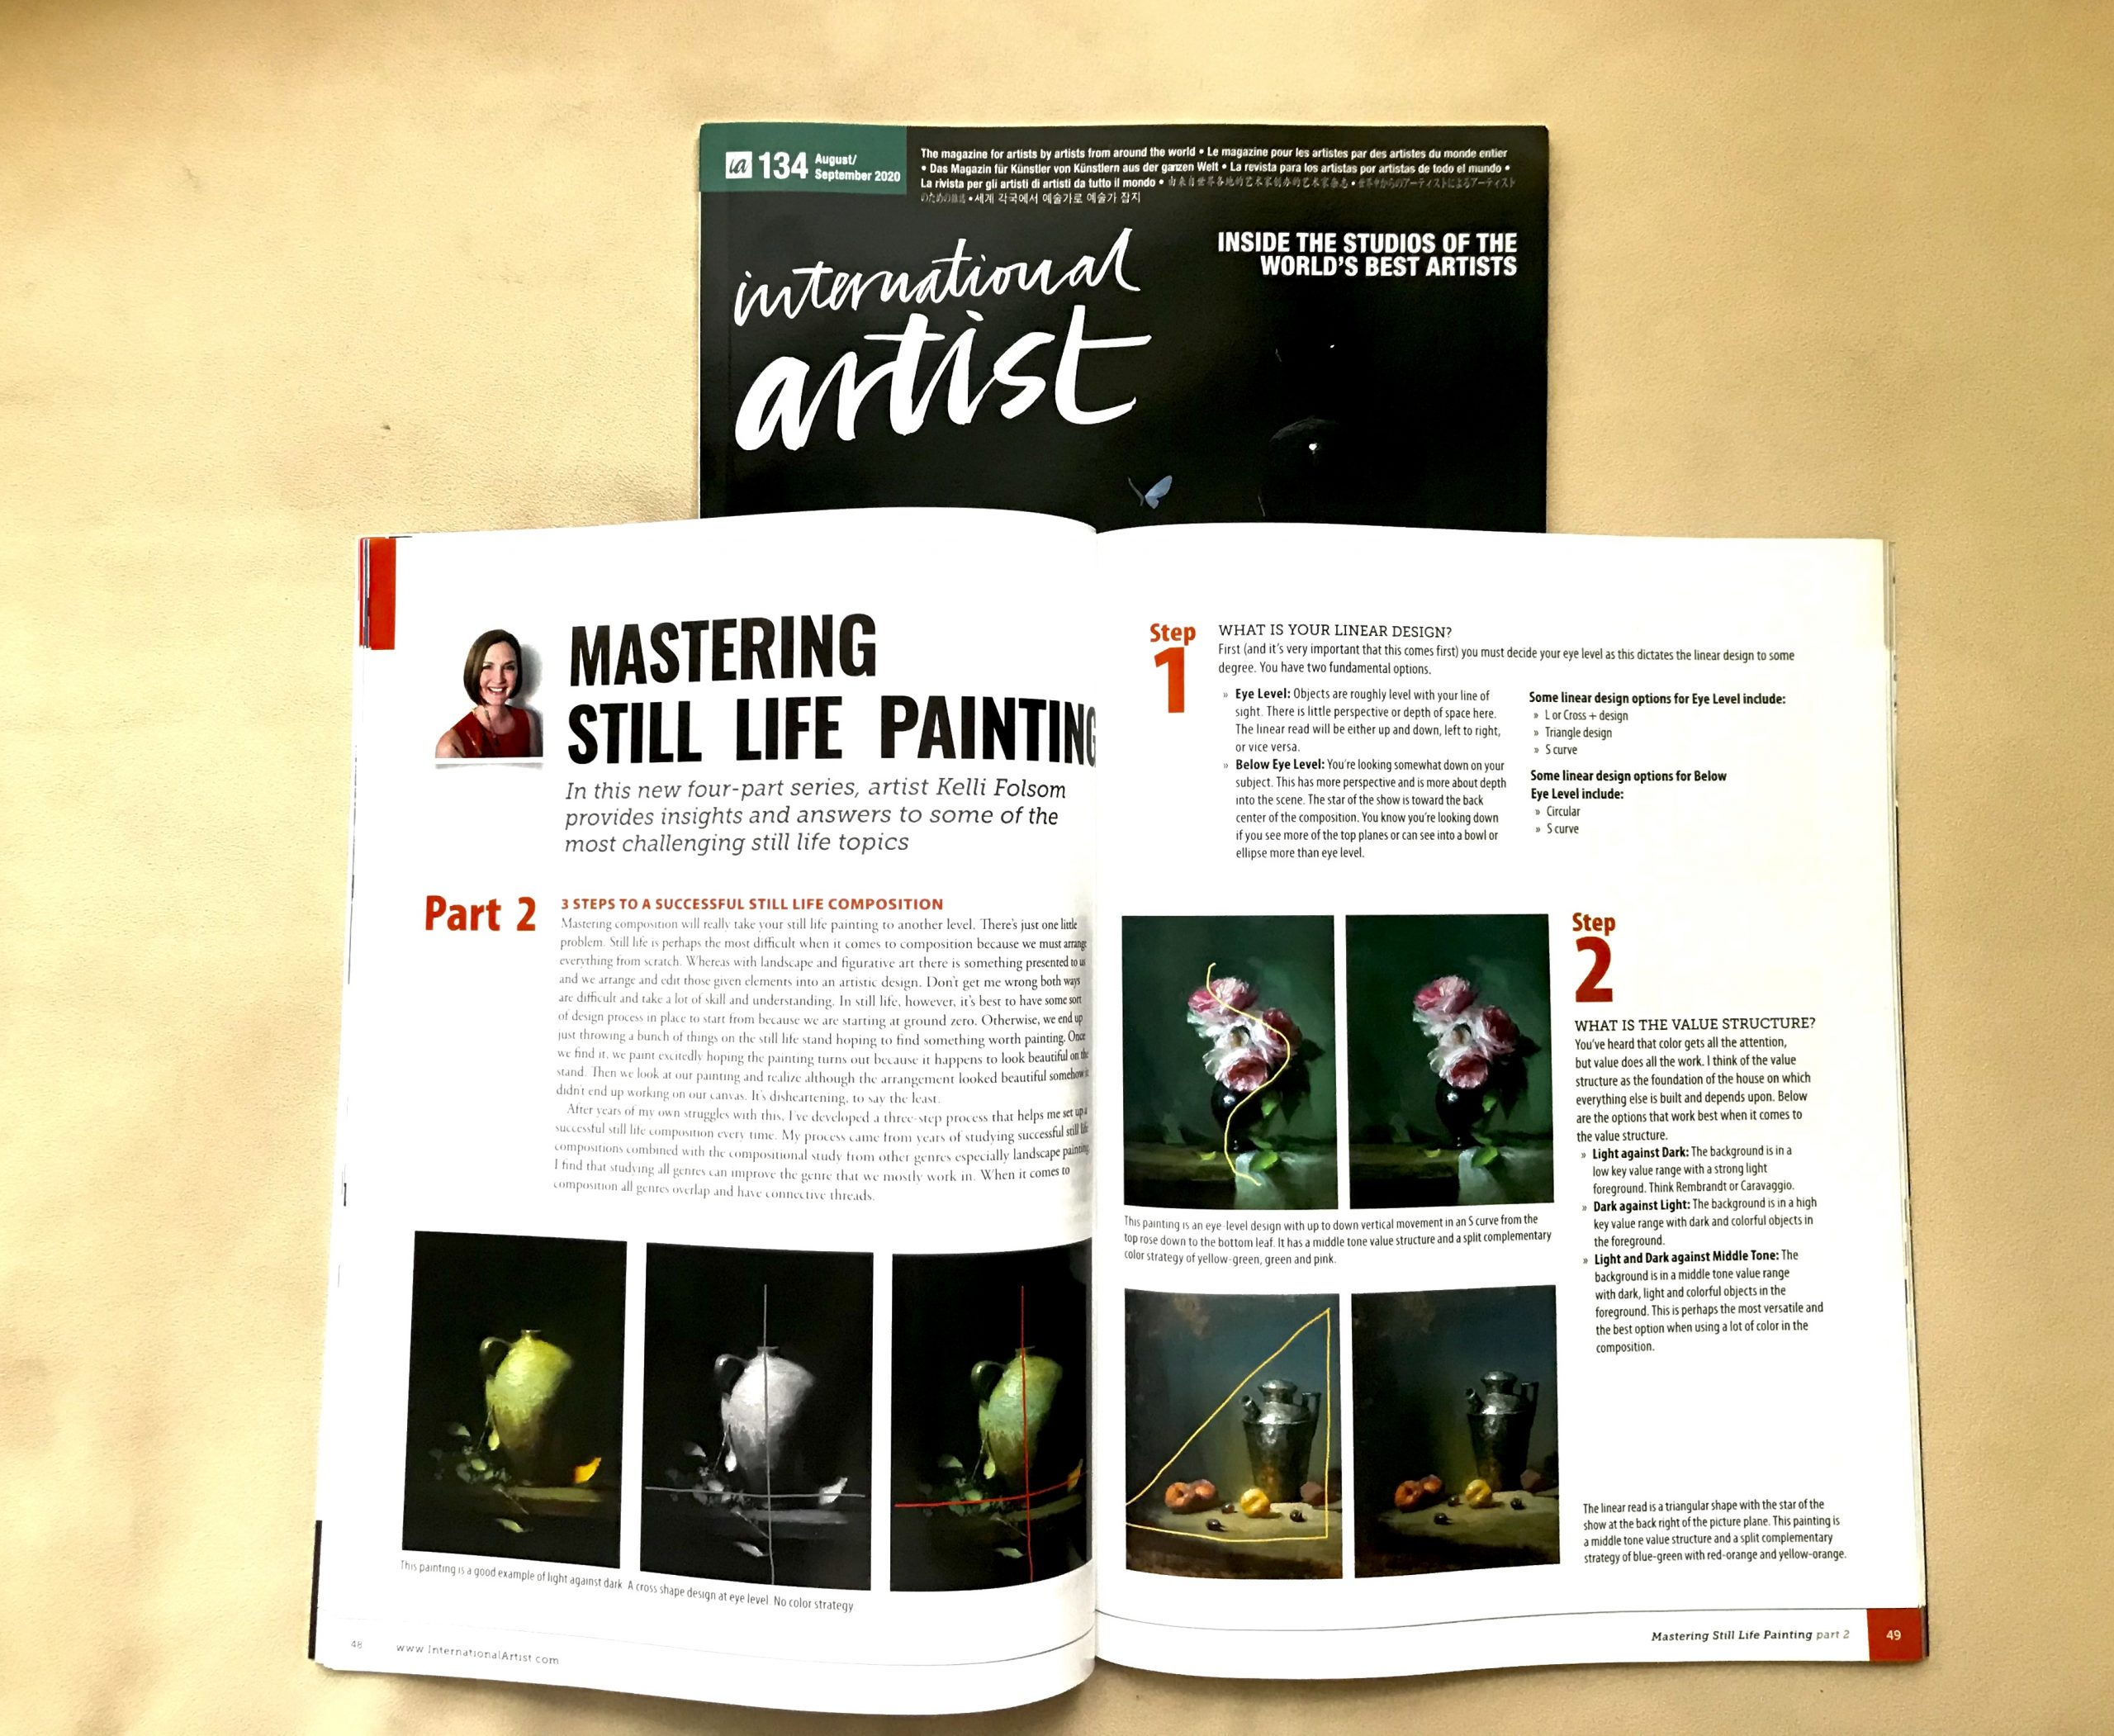 3 Steps to a Successful Still Life Composition